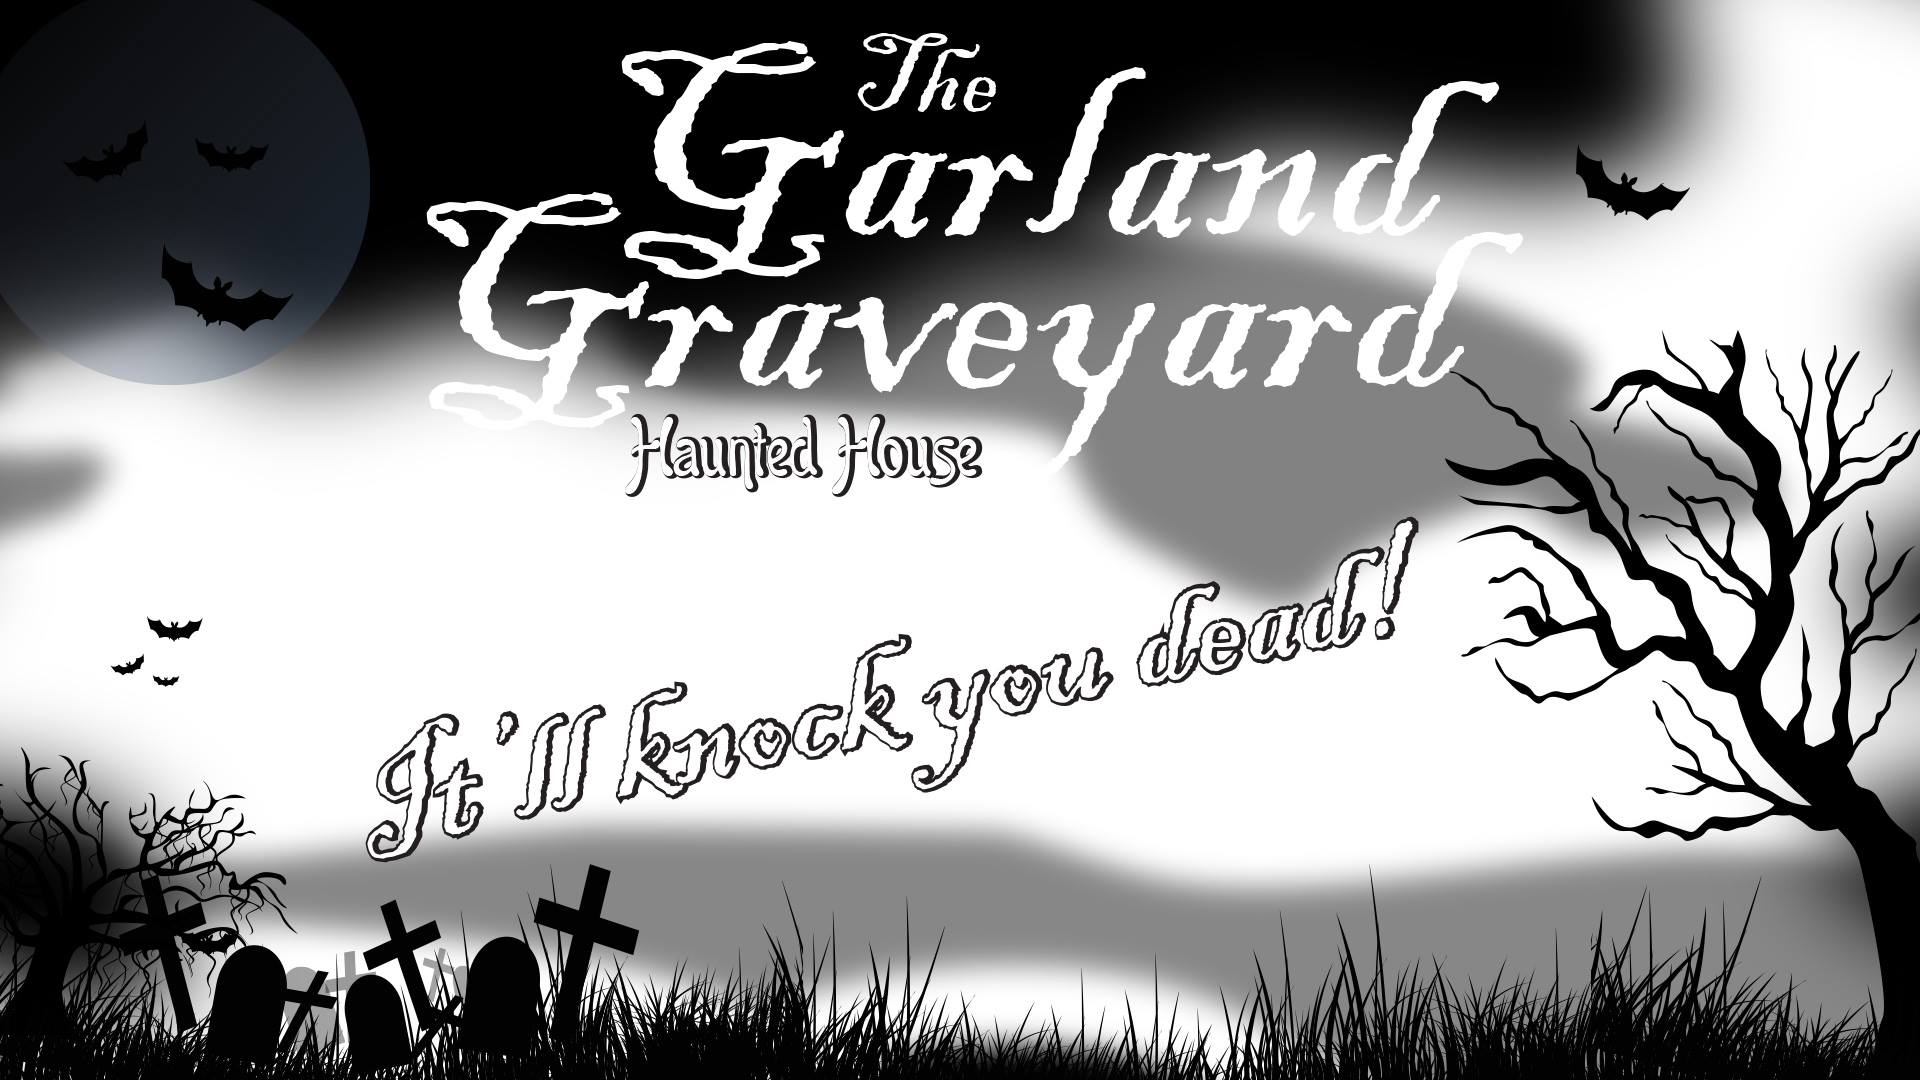 Bats, spooky cloudy background, text reads Garland Graveyard Haunted House, It'll knock you dead!